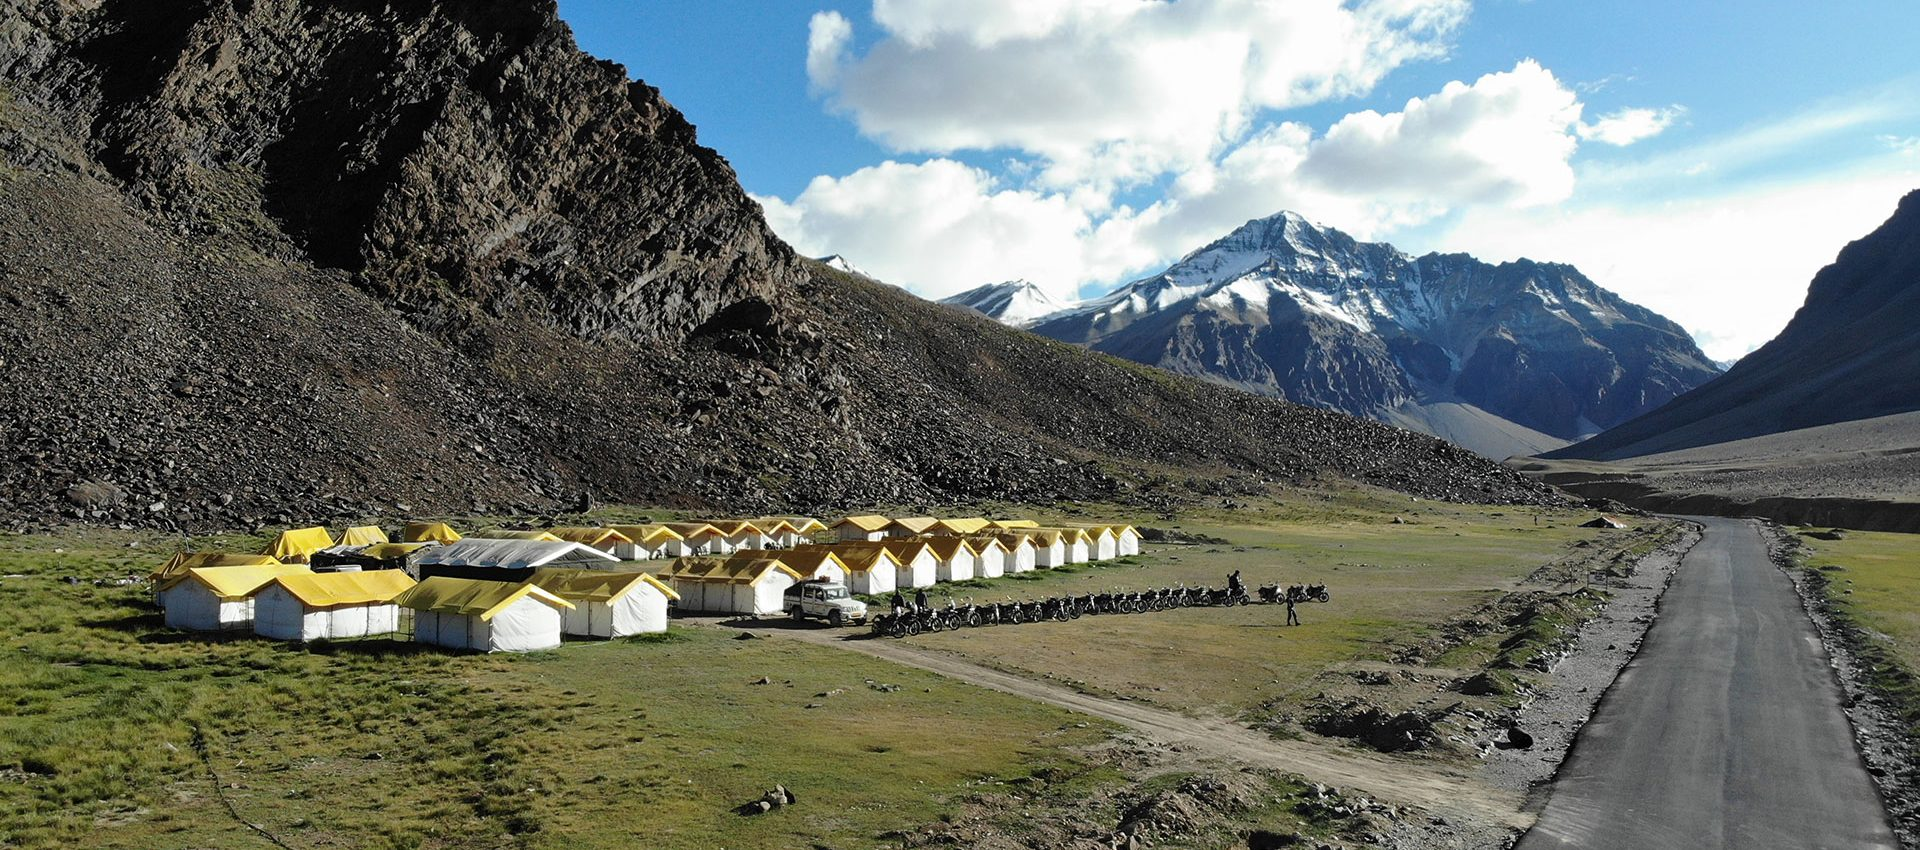 Our highest glamping style tent basecamp next to Sarchu village, 4.300 meters above sea level.